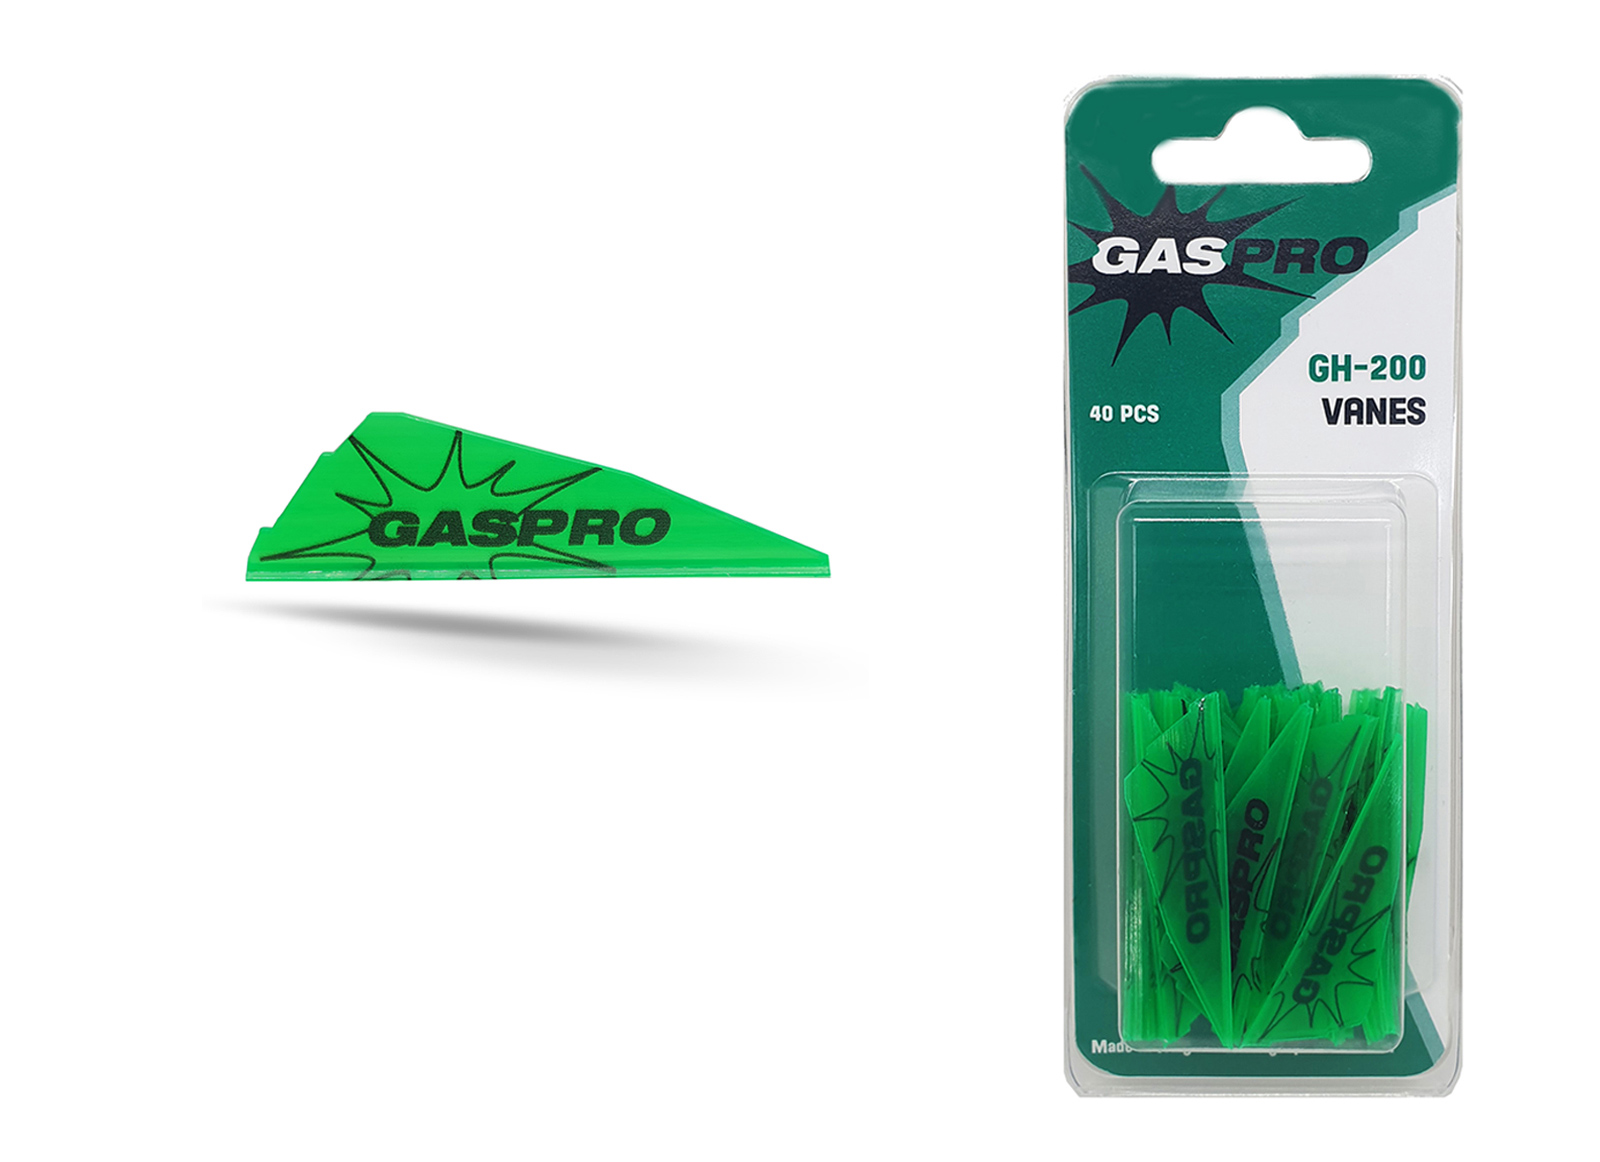 GAS PRO VANES GH-200 40PCS WITHOUT GLUE